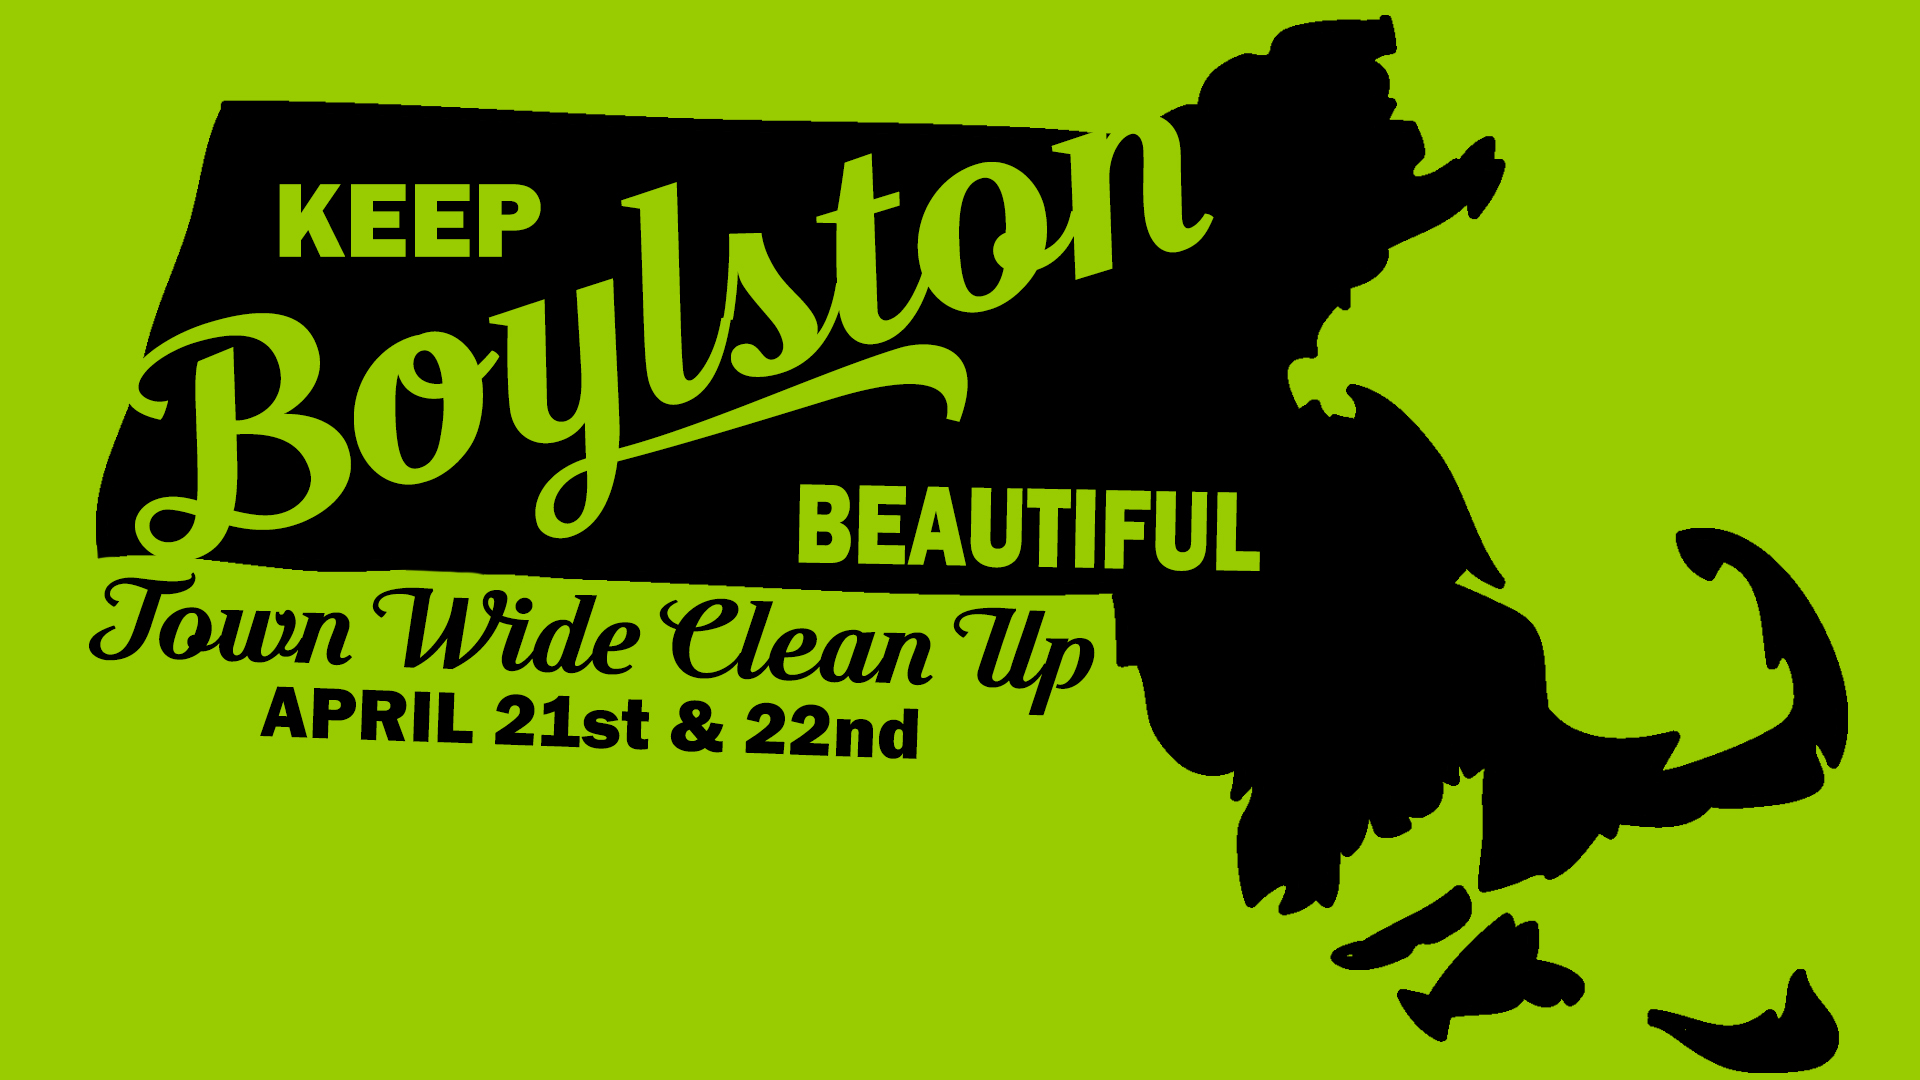 Keep Boylston Beautiful Town Wide Clean Up